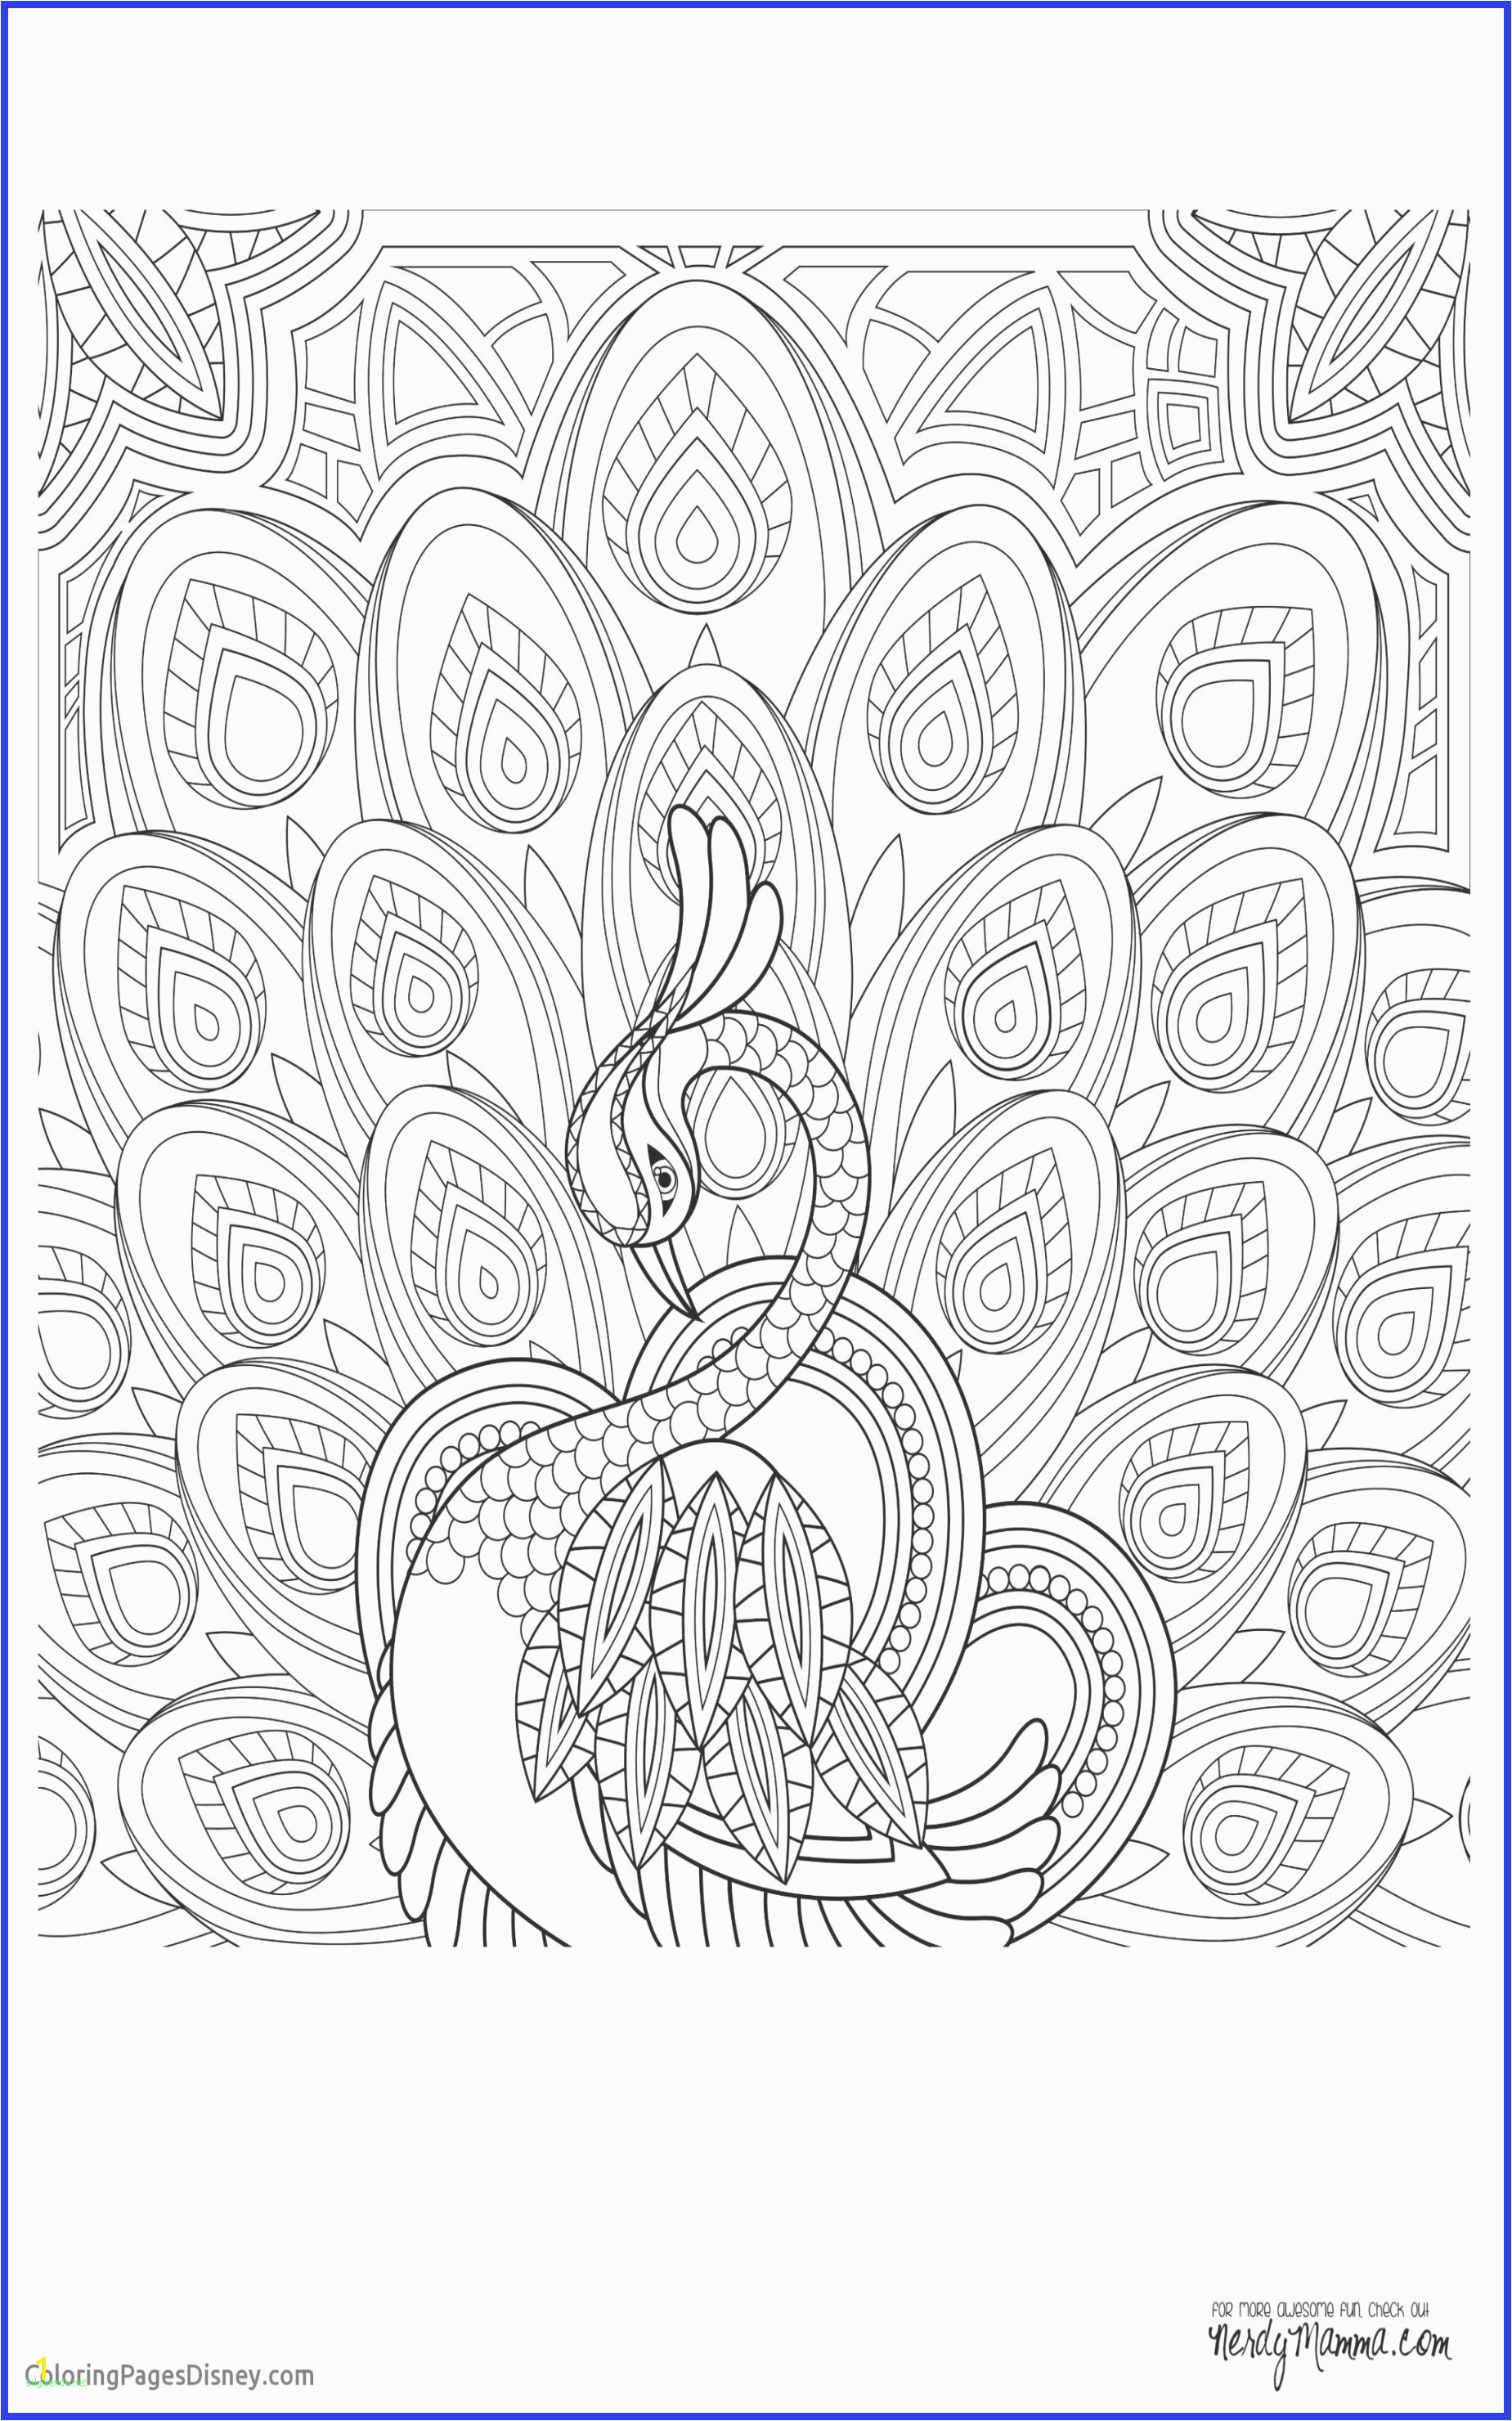 Halloween Coloring Pages From Disney Beautiful Printable Home Coloring Pages Best Color Sheet 0d – Modokom